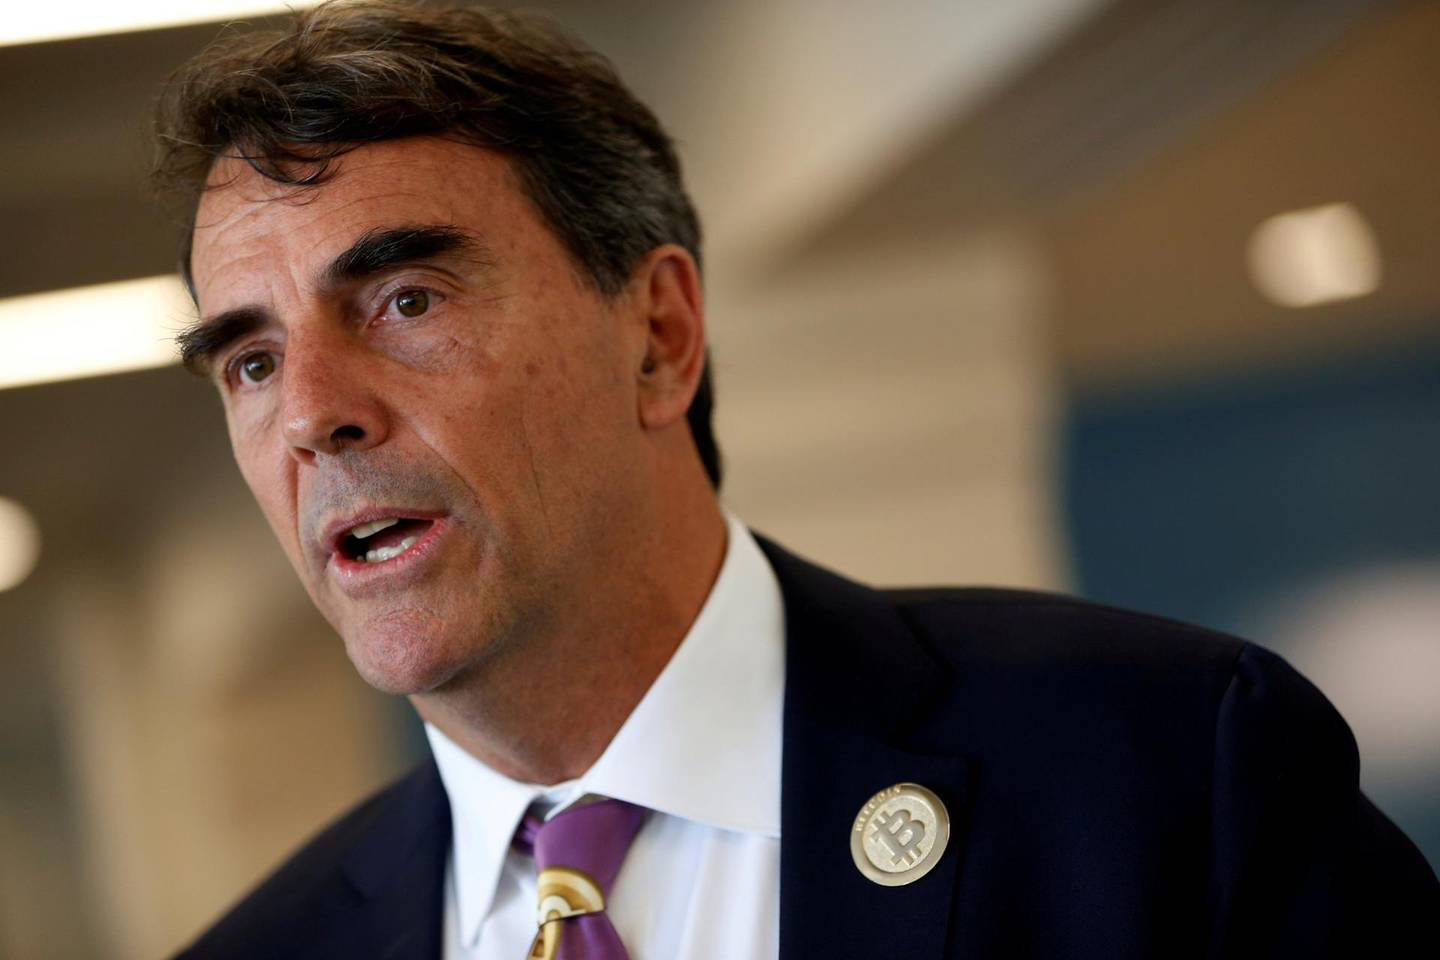 FILE PHOTO:    Venture capitalist and CAL 3 Chairman Tim Draper speaks during a press conference after announcing he has collected more than 600,000 signatures to put the plan to partition  California into three states into the November ballot in San Mateo, California, April 12, 2018. REUTERS/ Stephen Lam/File Photo